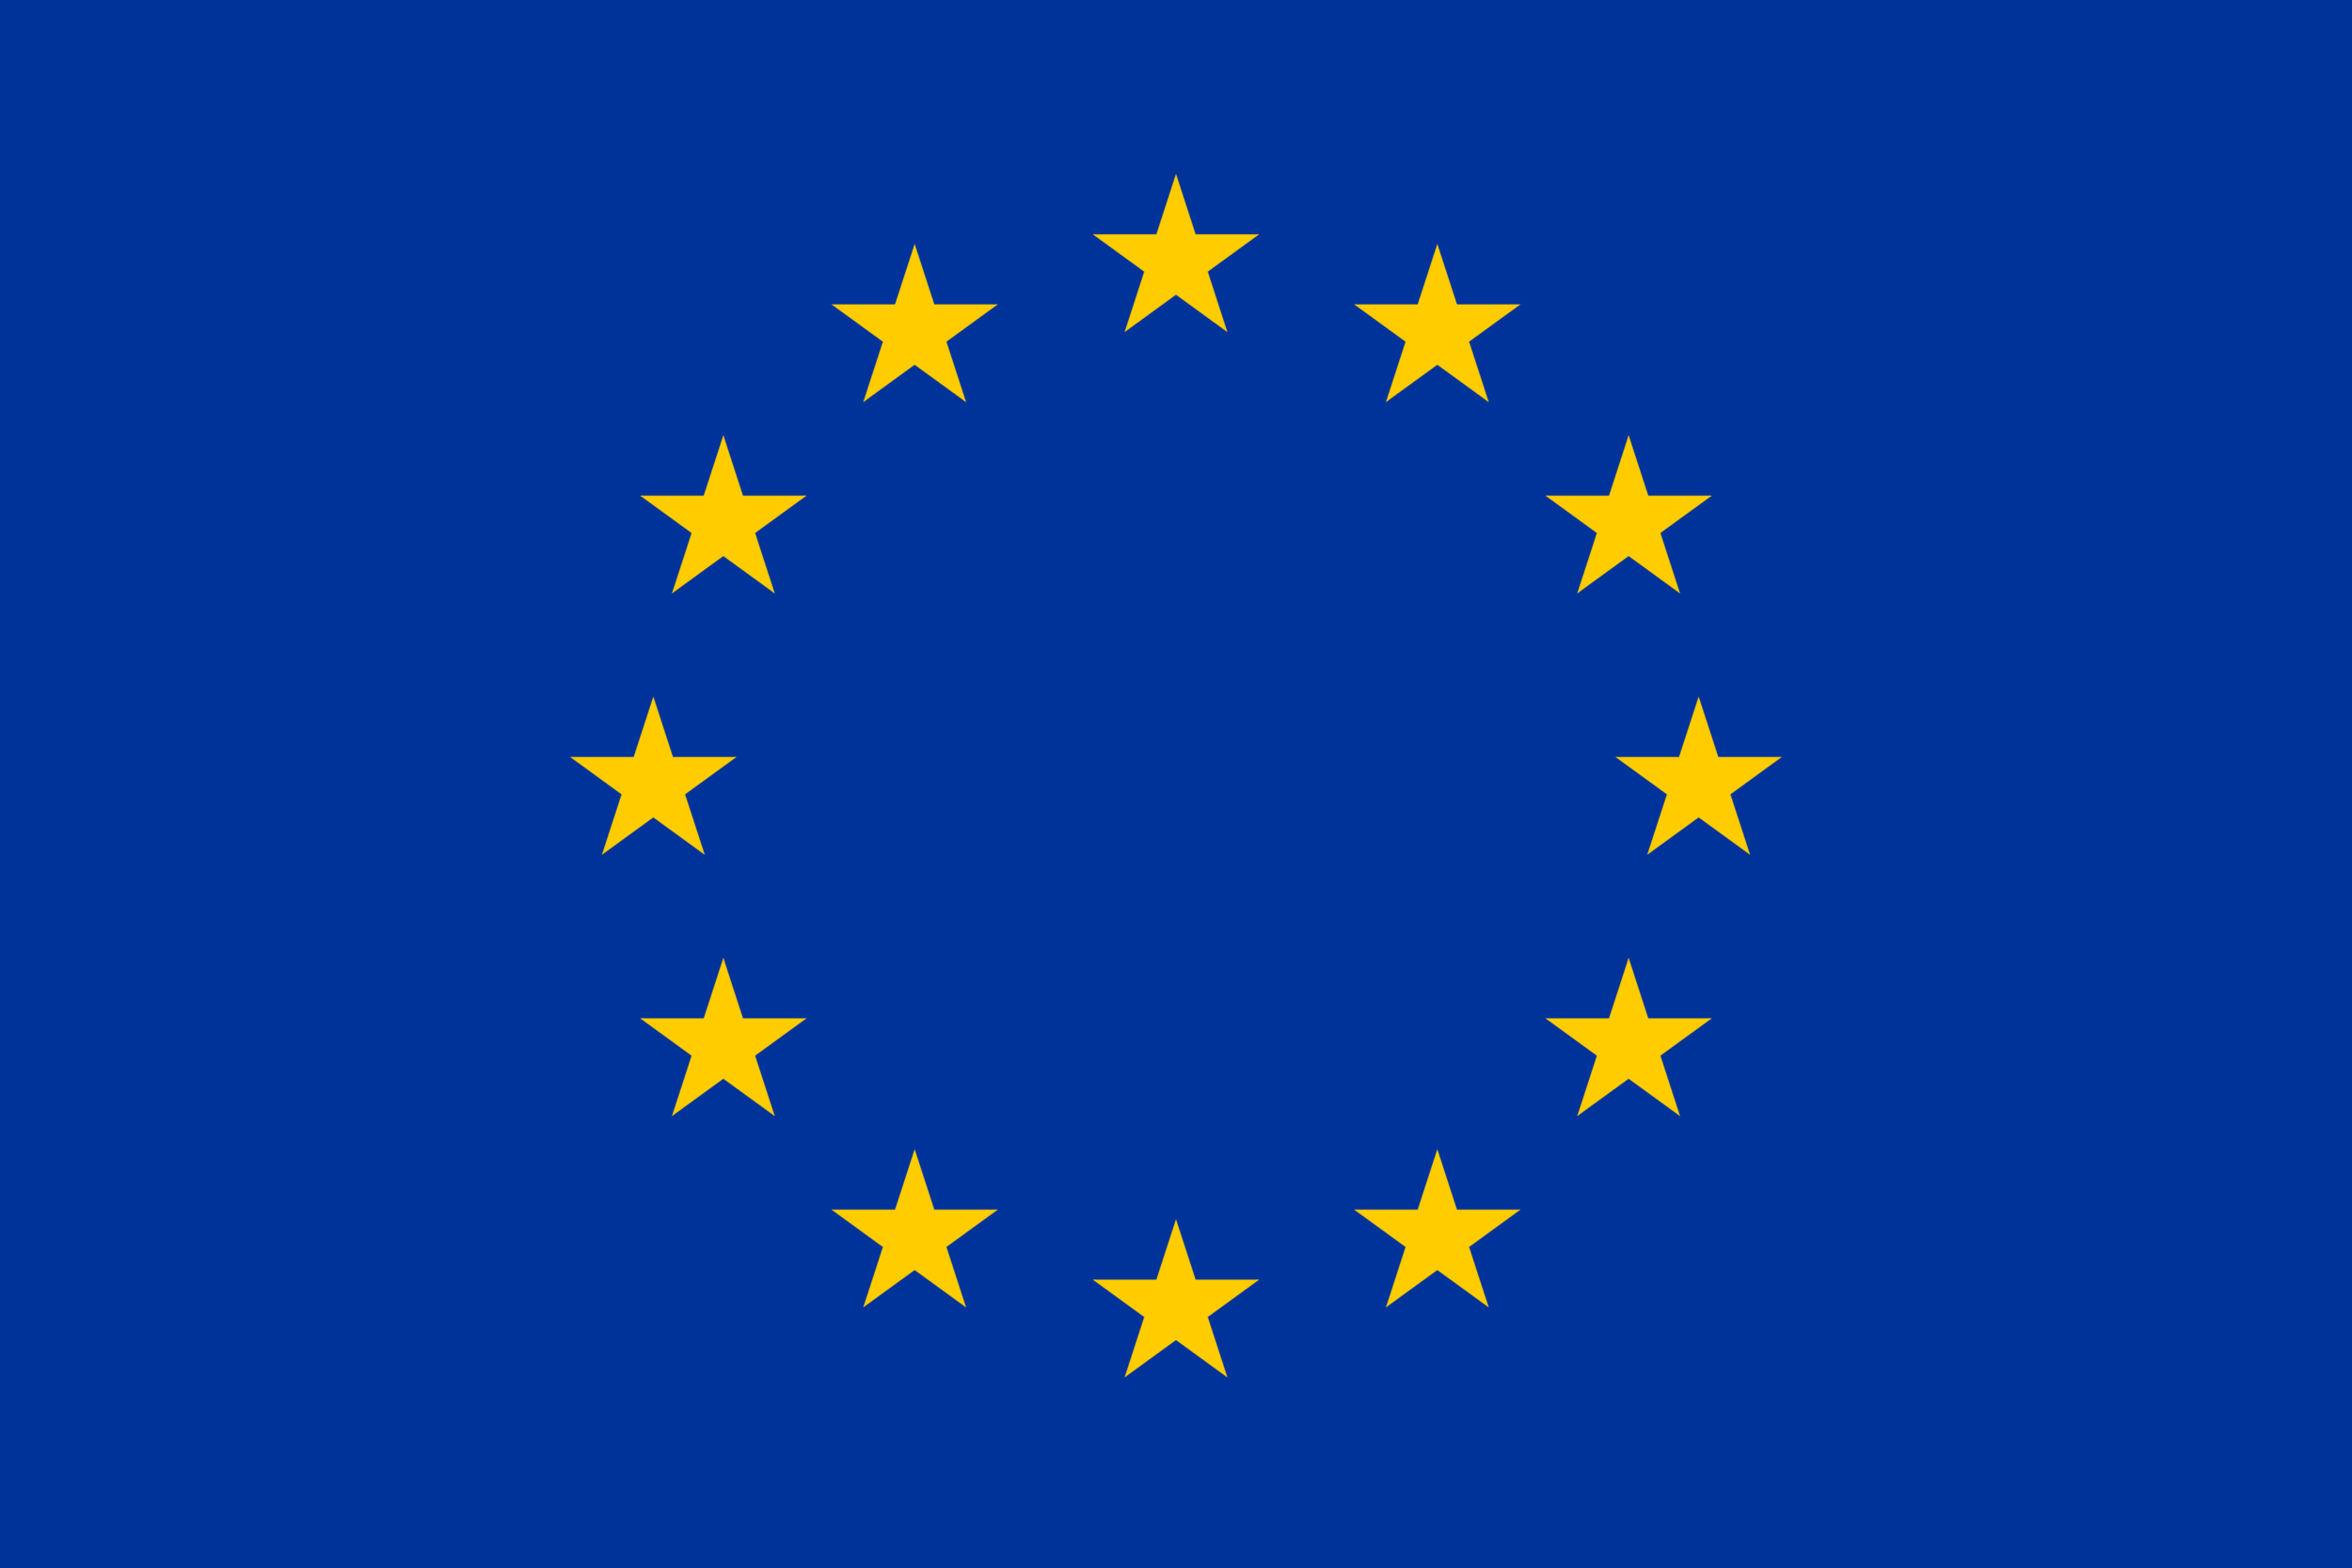 Flag_of_Europe.071f46c9.png